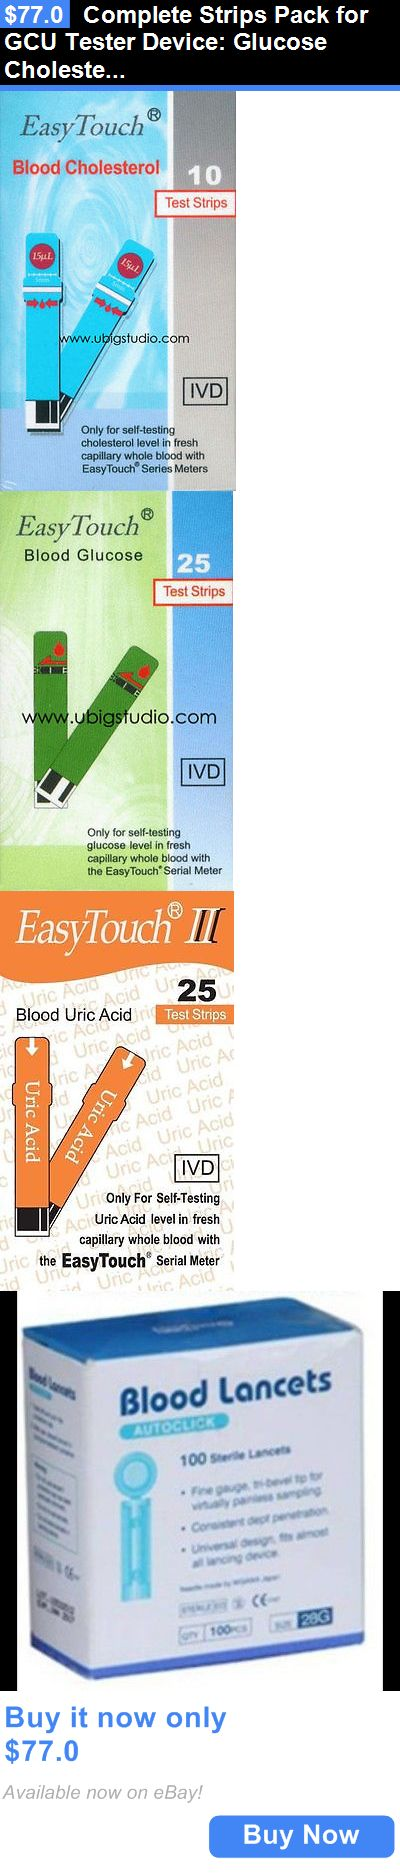 Cholesterol Testing: Complete Strips Pack For Gcu Tester Device: Glucose Cholesterol Uric Acid Lancet BUY IT NOW ONLY: $77.0